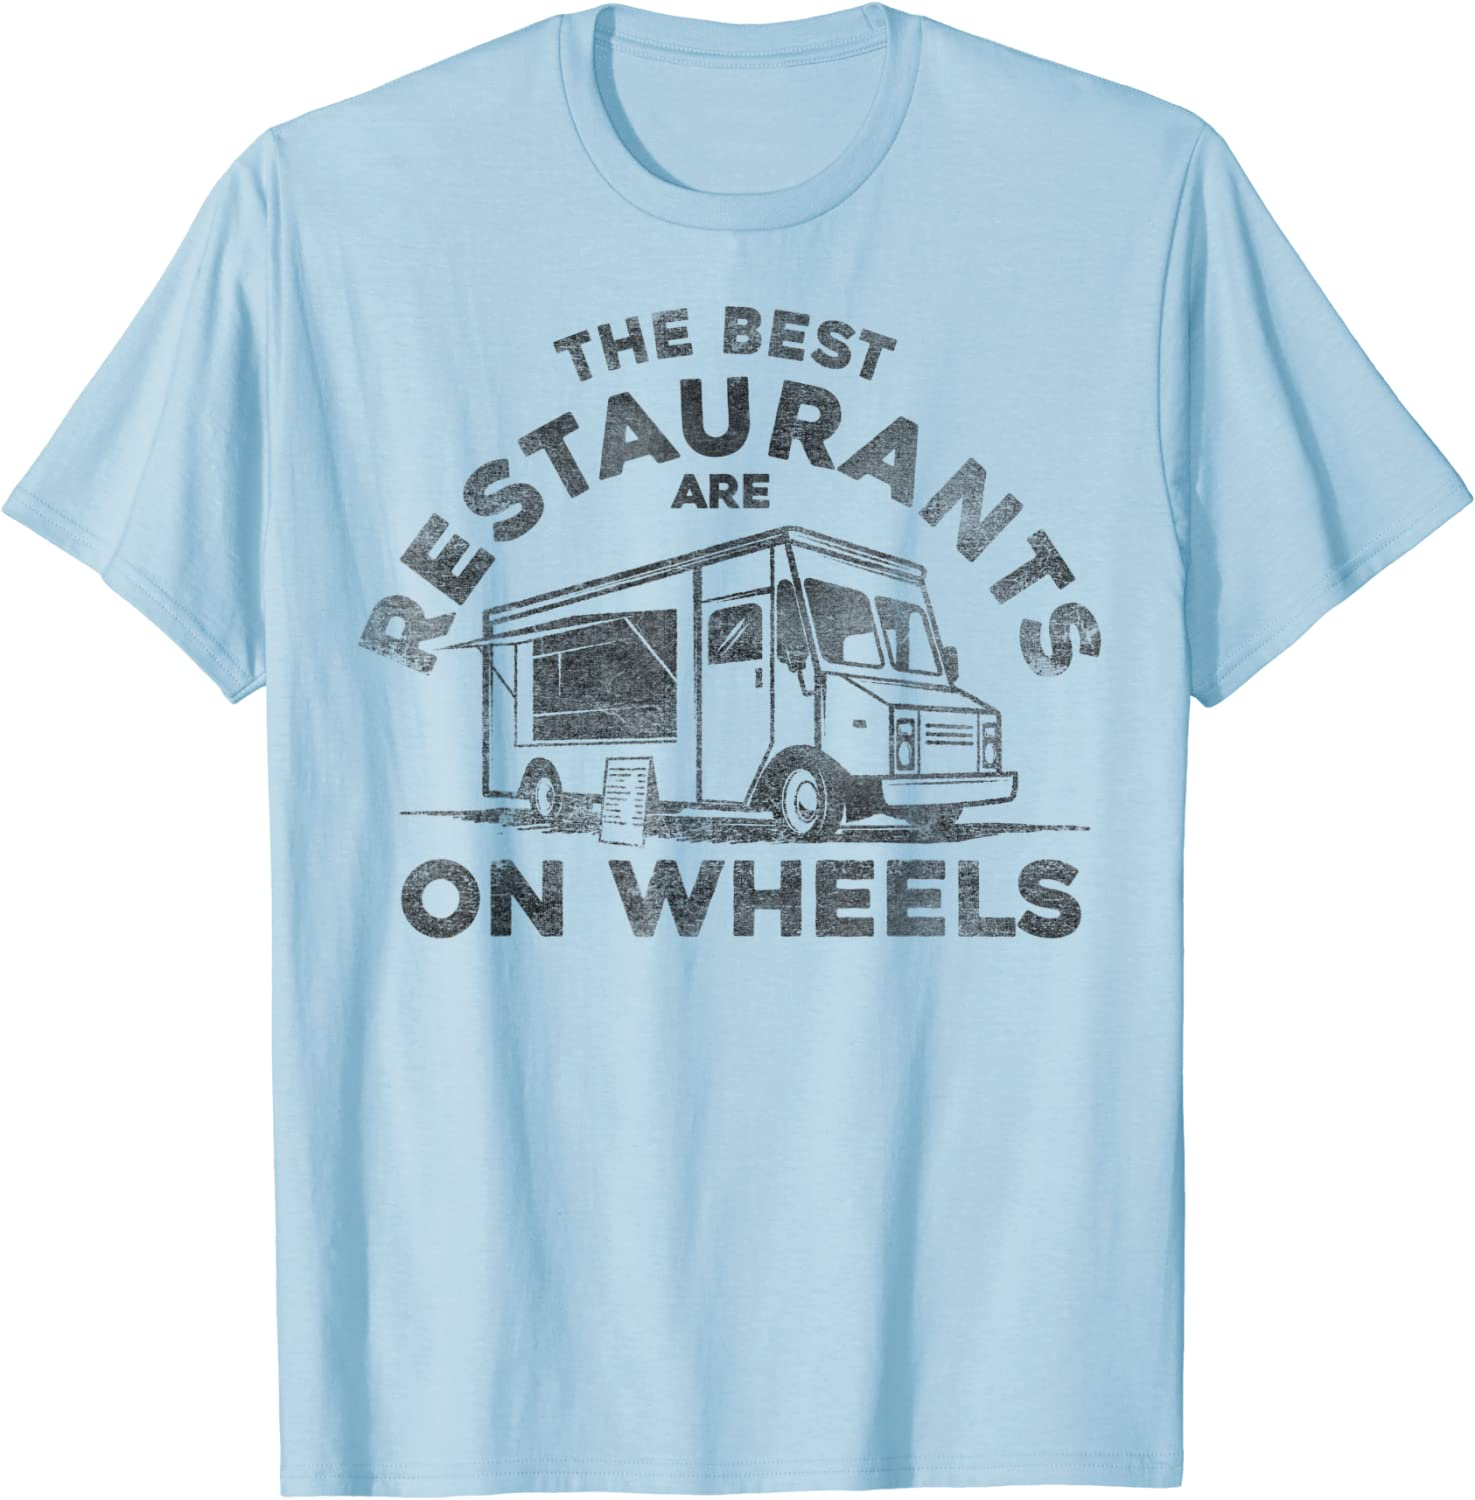 The Best Restaurants Are On Wheels Food Truck T-Shirt